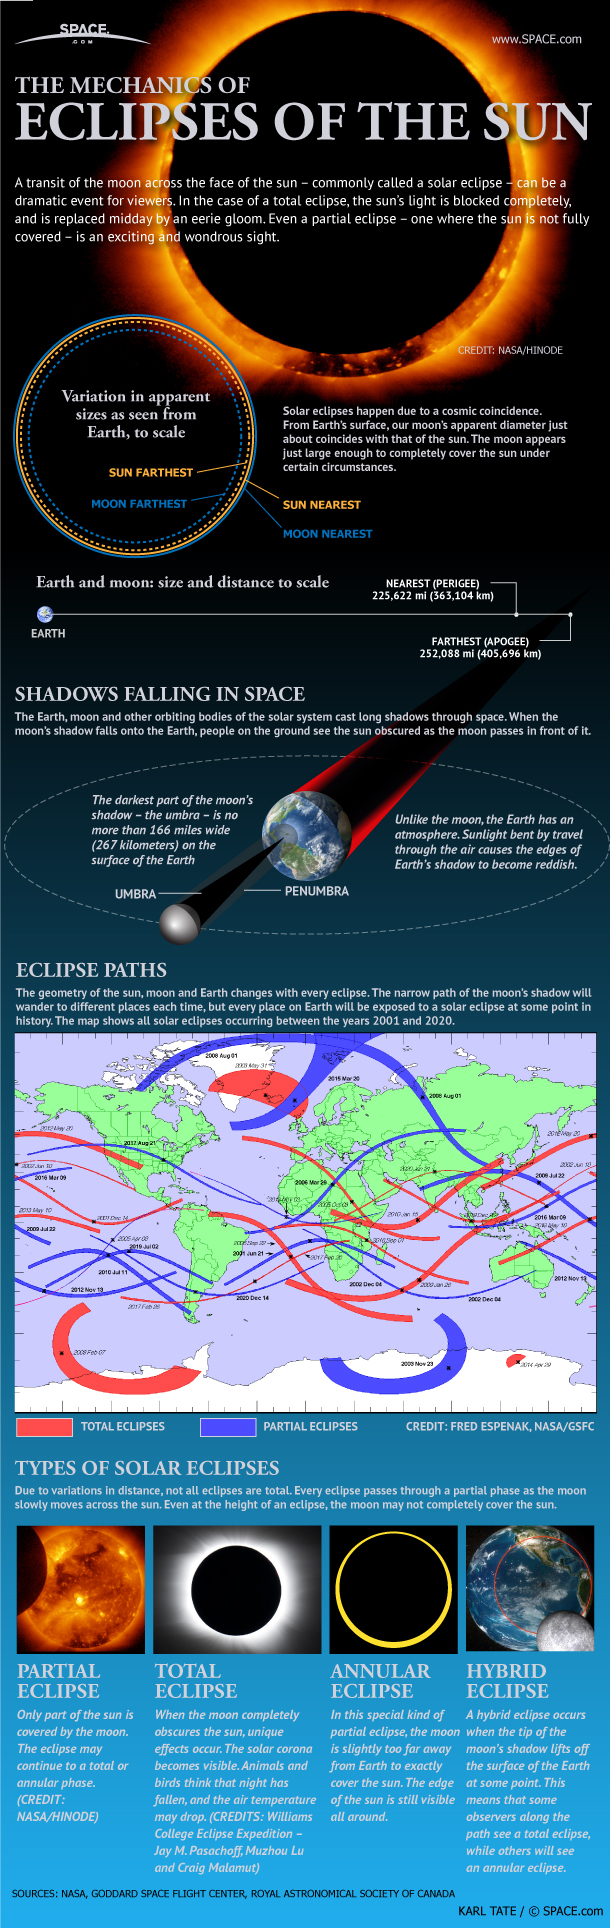 Guide to Solar Eclipses (Infographic) Guide to Solar Eclipses (Infographic)